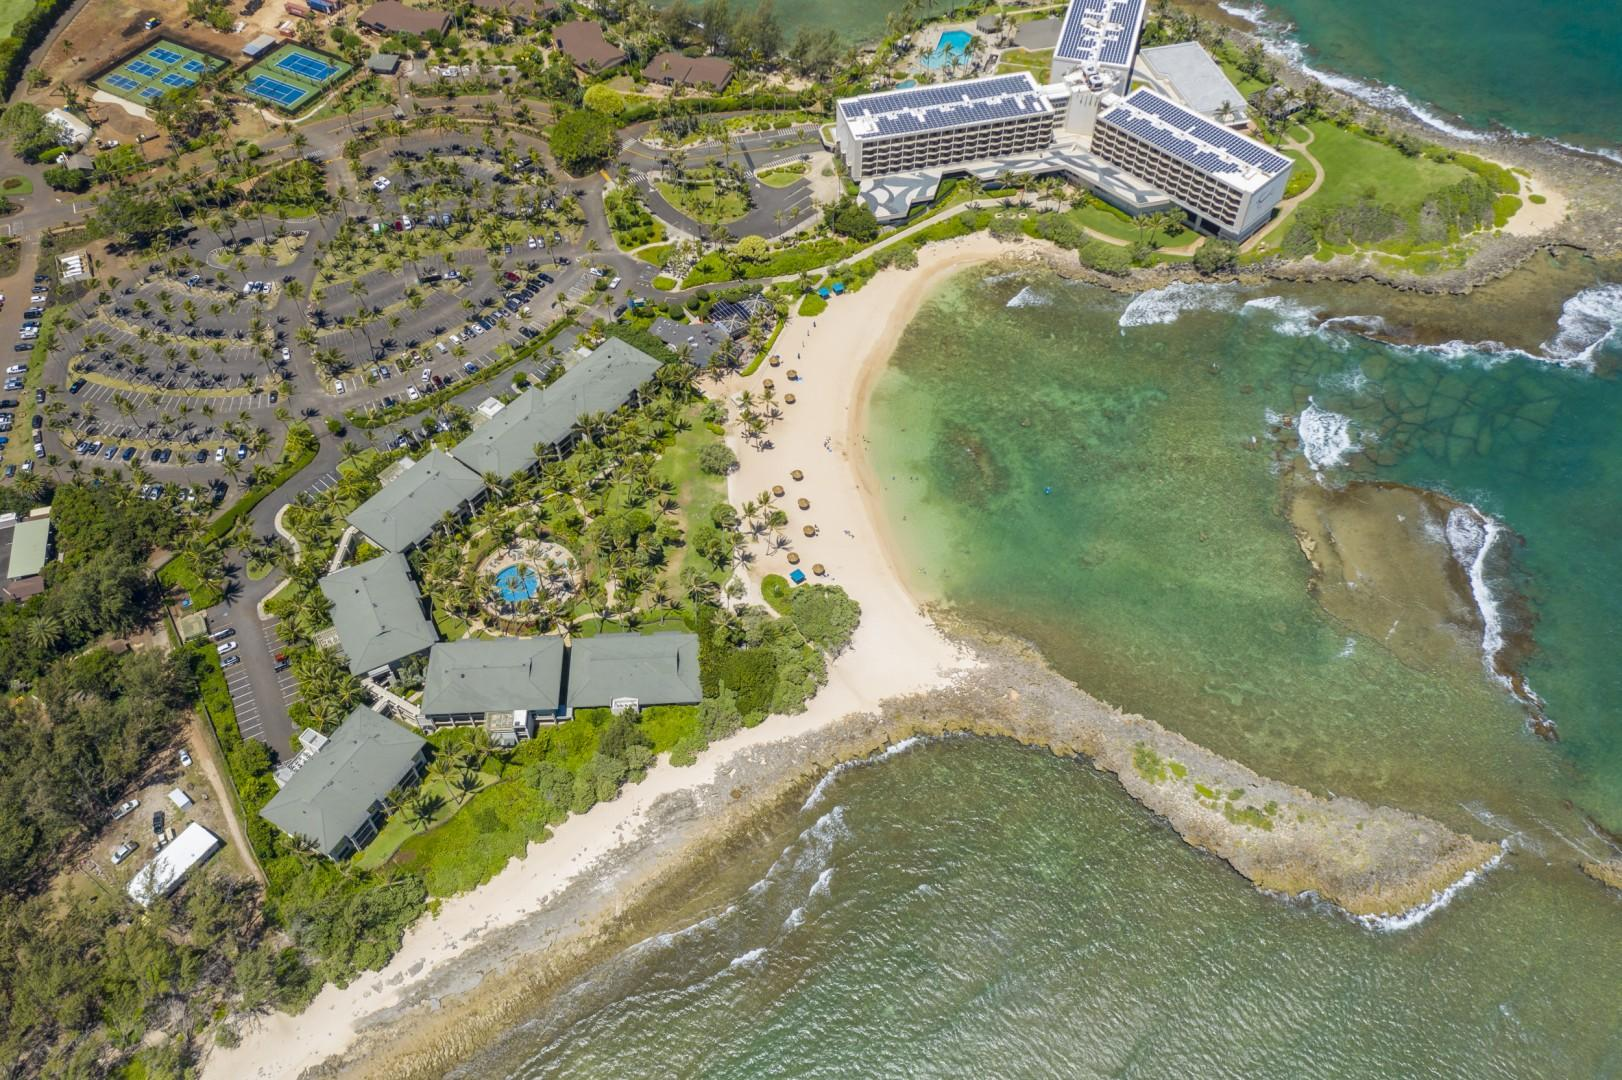 Aerial view of the Villas, Turtle Bay Resort and Beaches